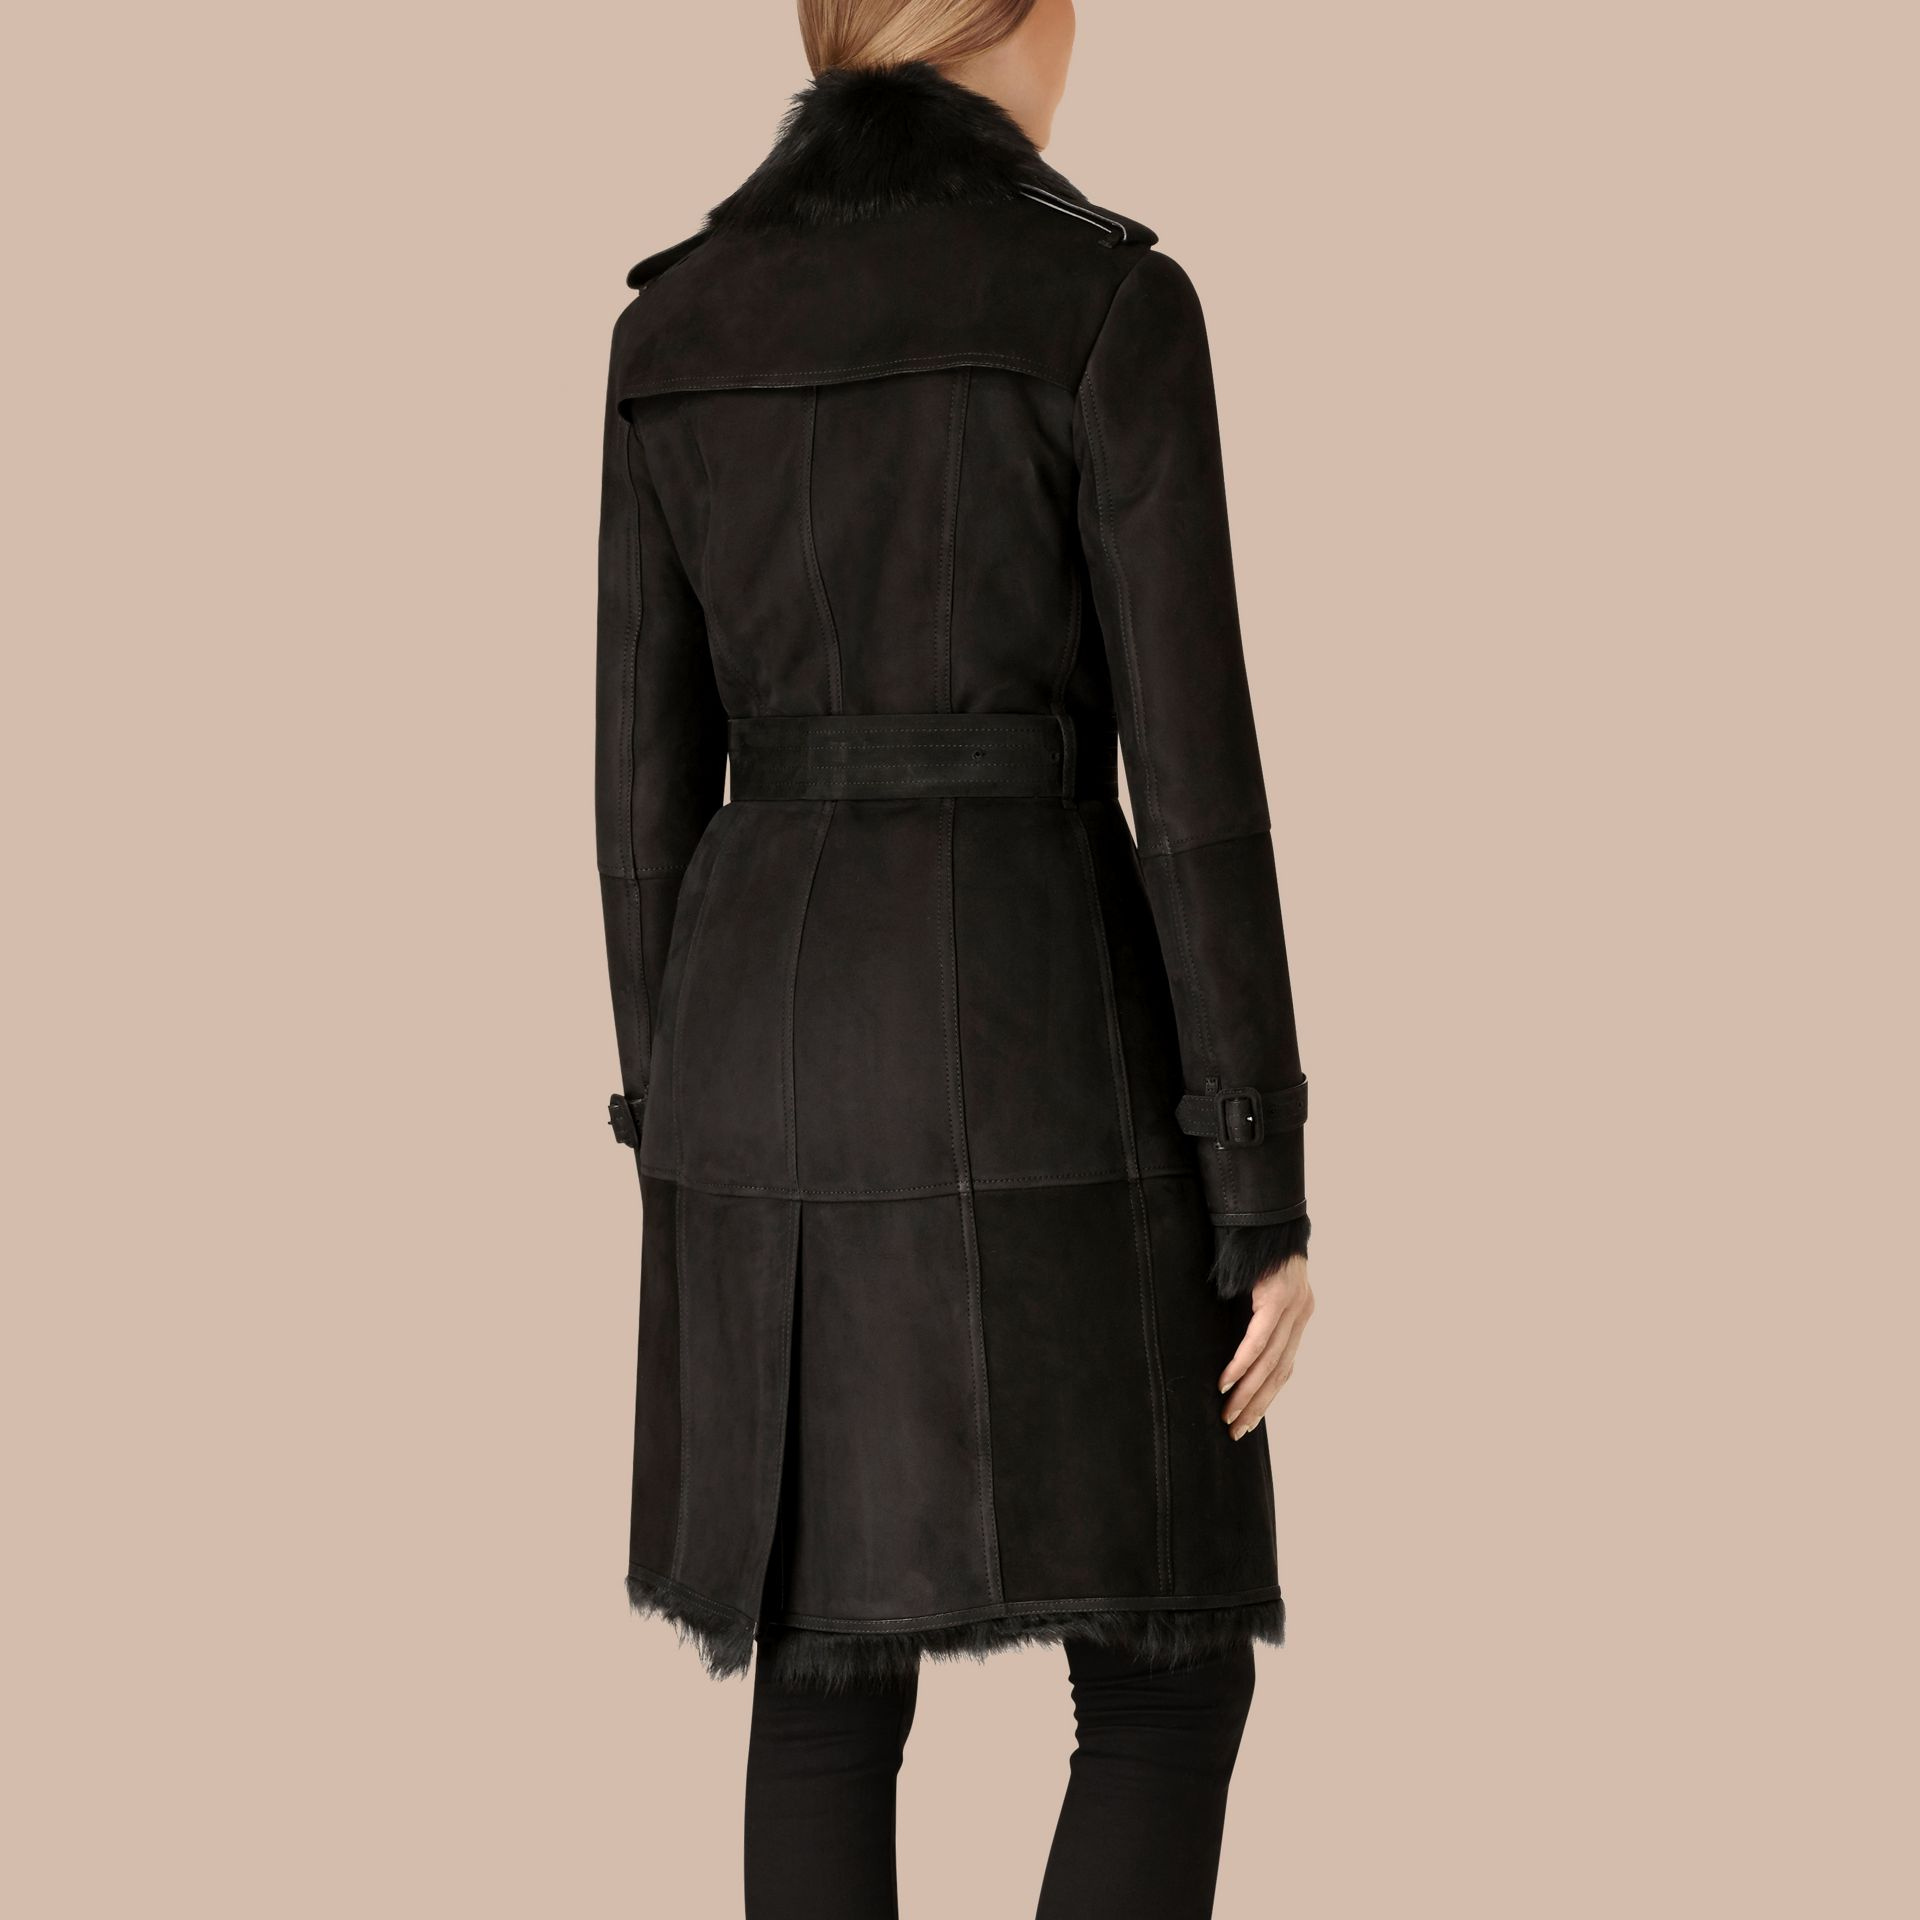 Black Shearling Trench Coat Black - gallery image 4